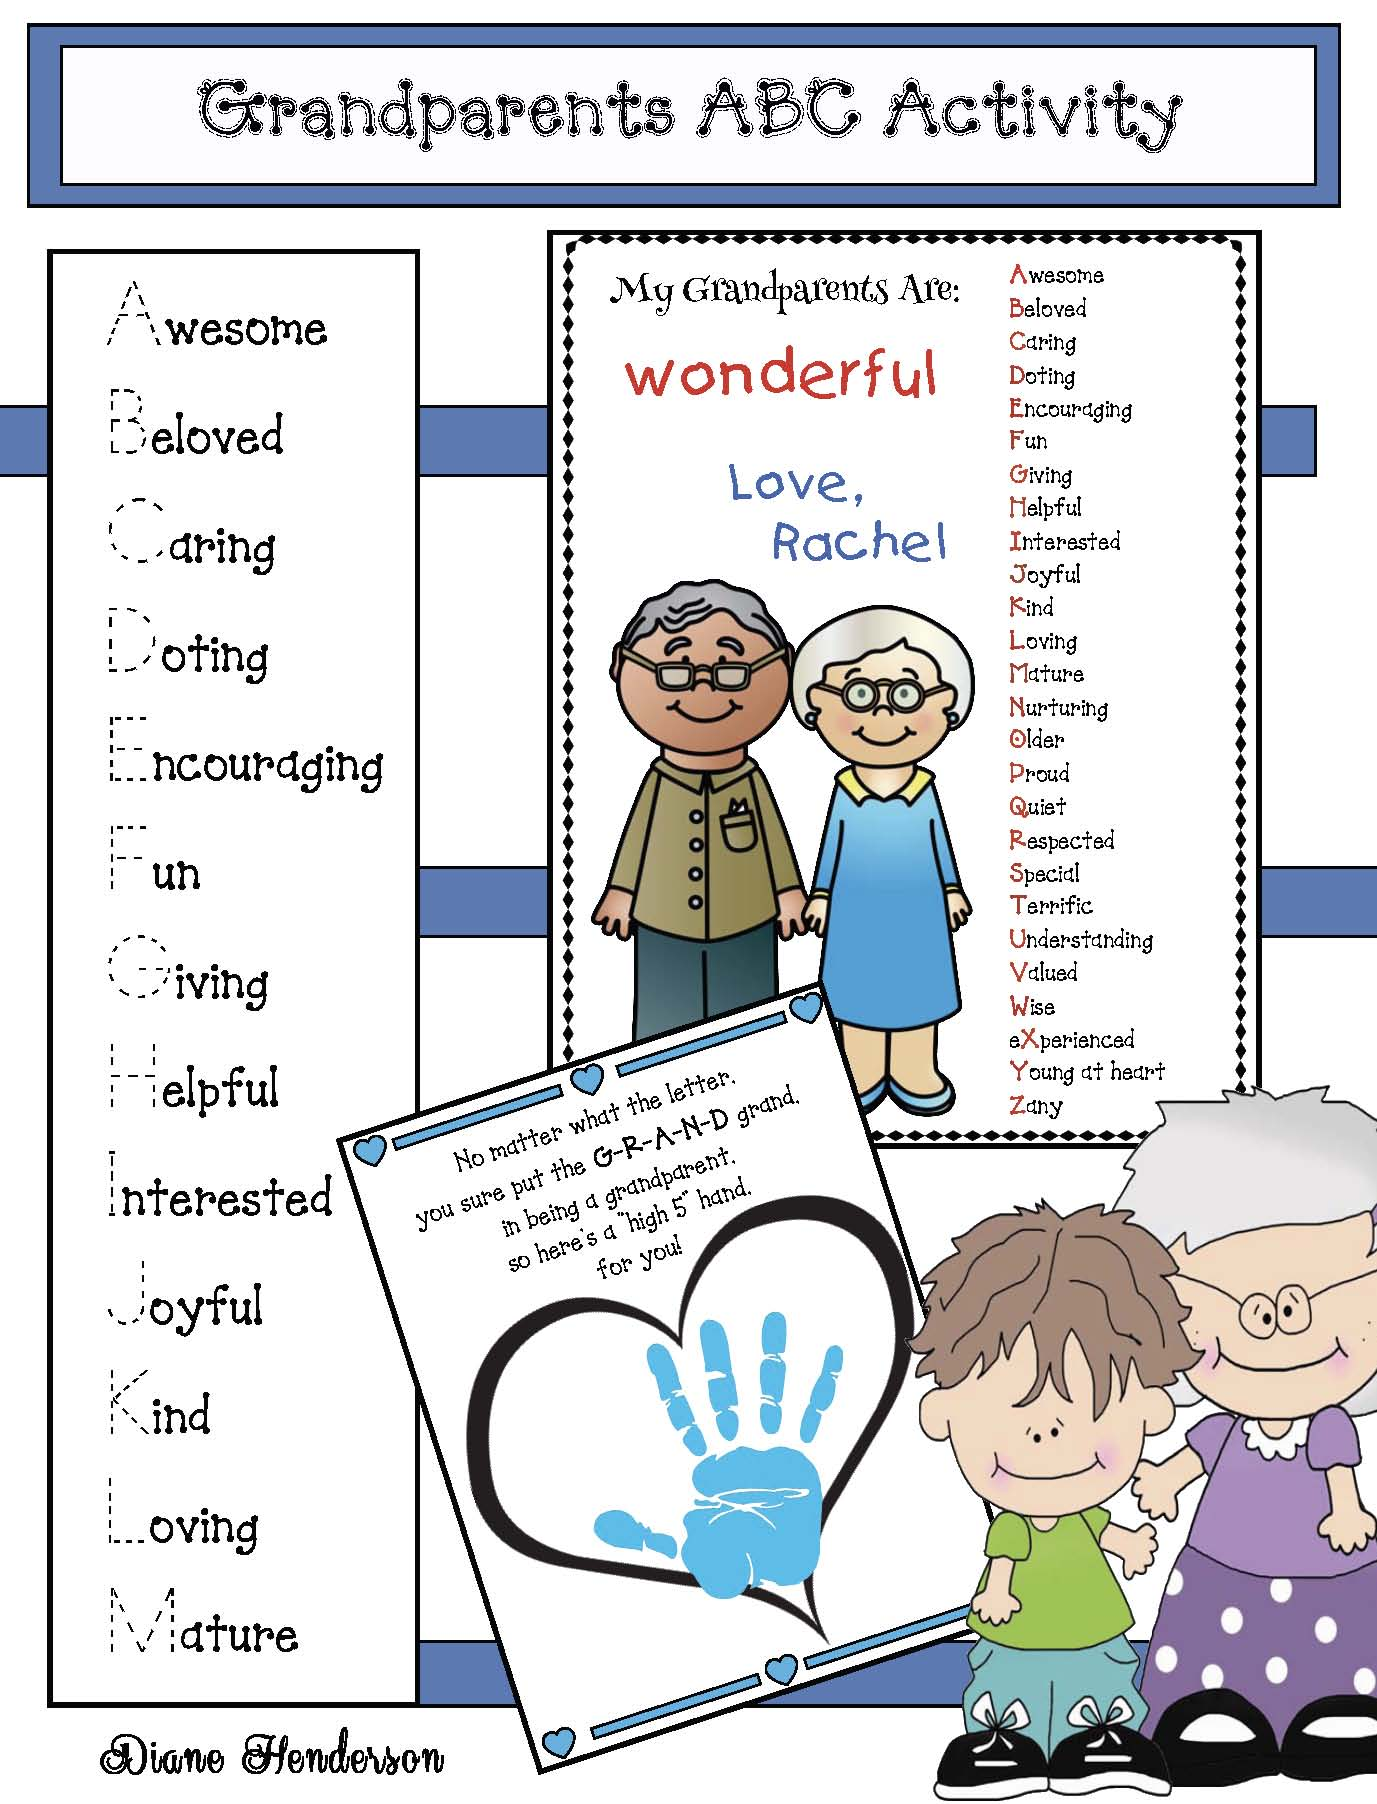 activities to do with grandparents, grandparents day activities, grandparents day crafts, handprint crafts, keepsake crafts, grandparents day invitation,